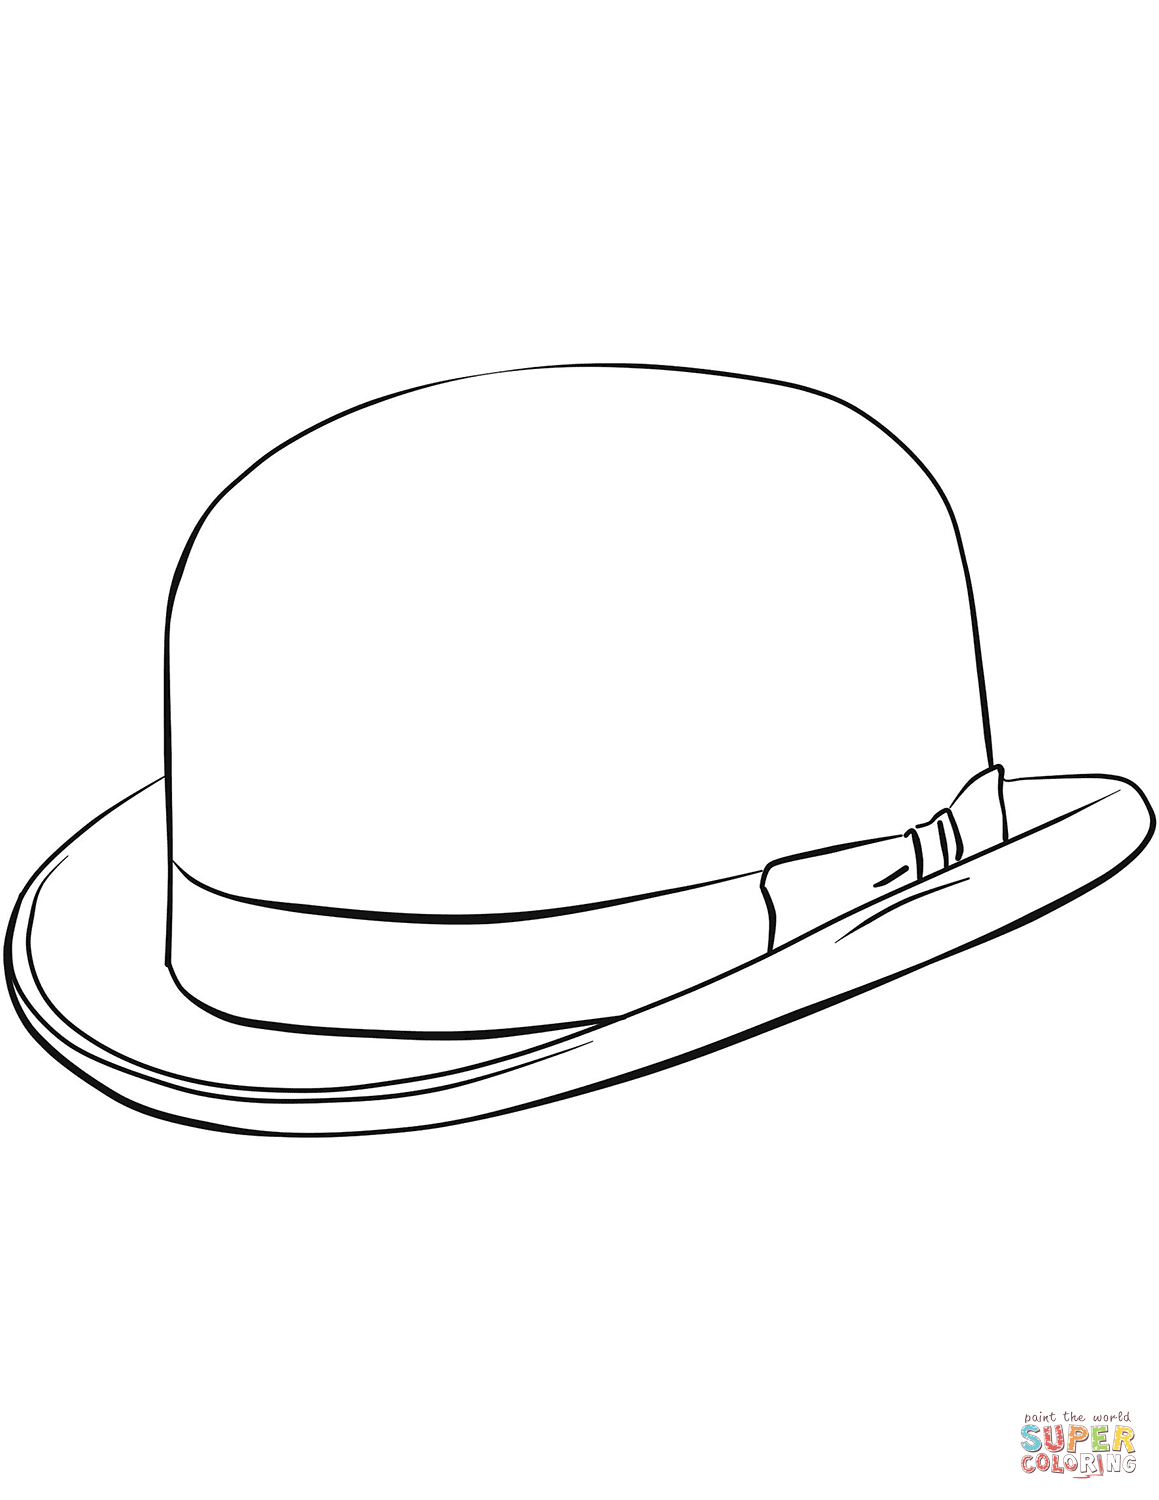 Bowler Hat Coloring Page